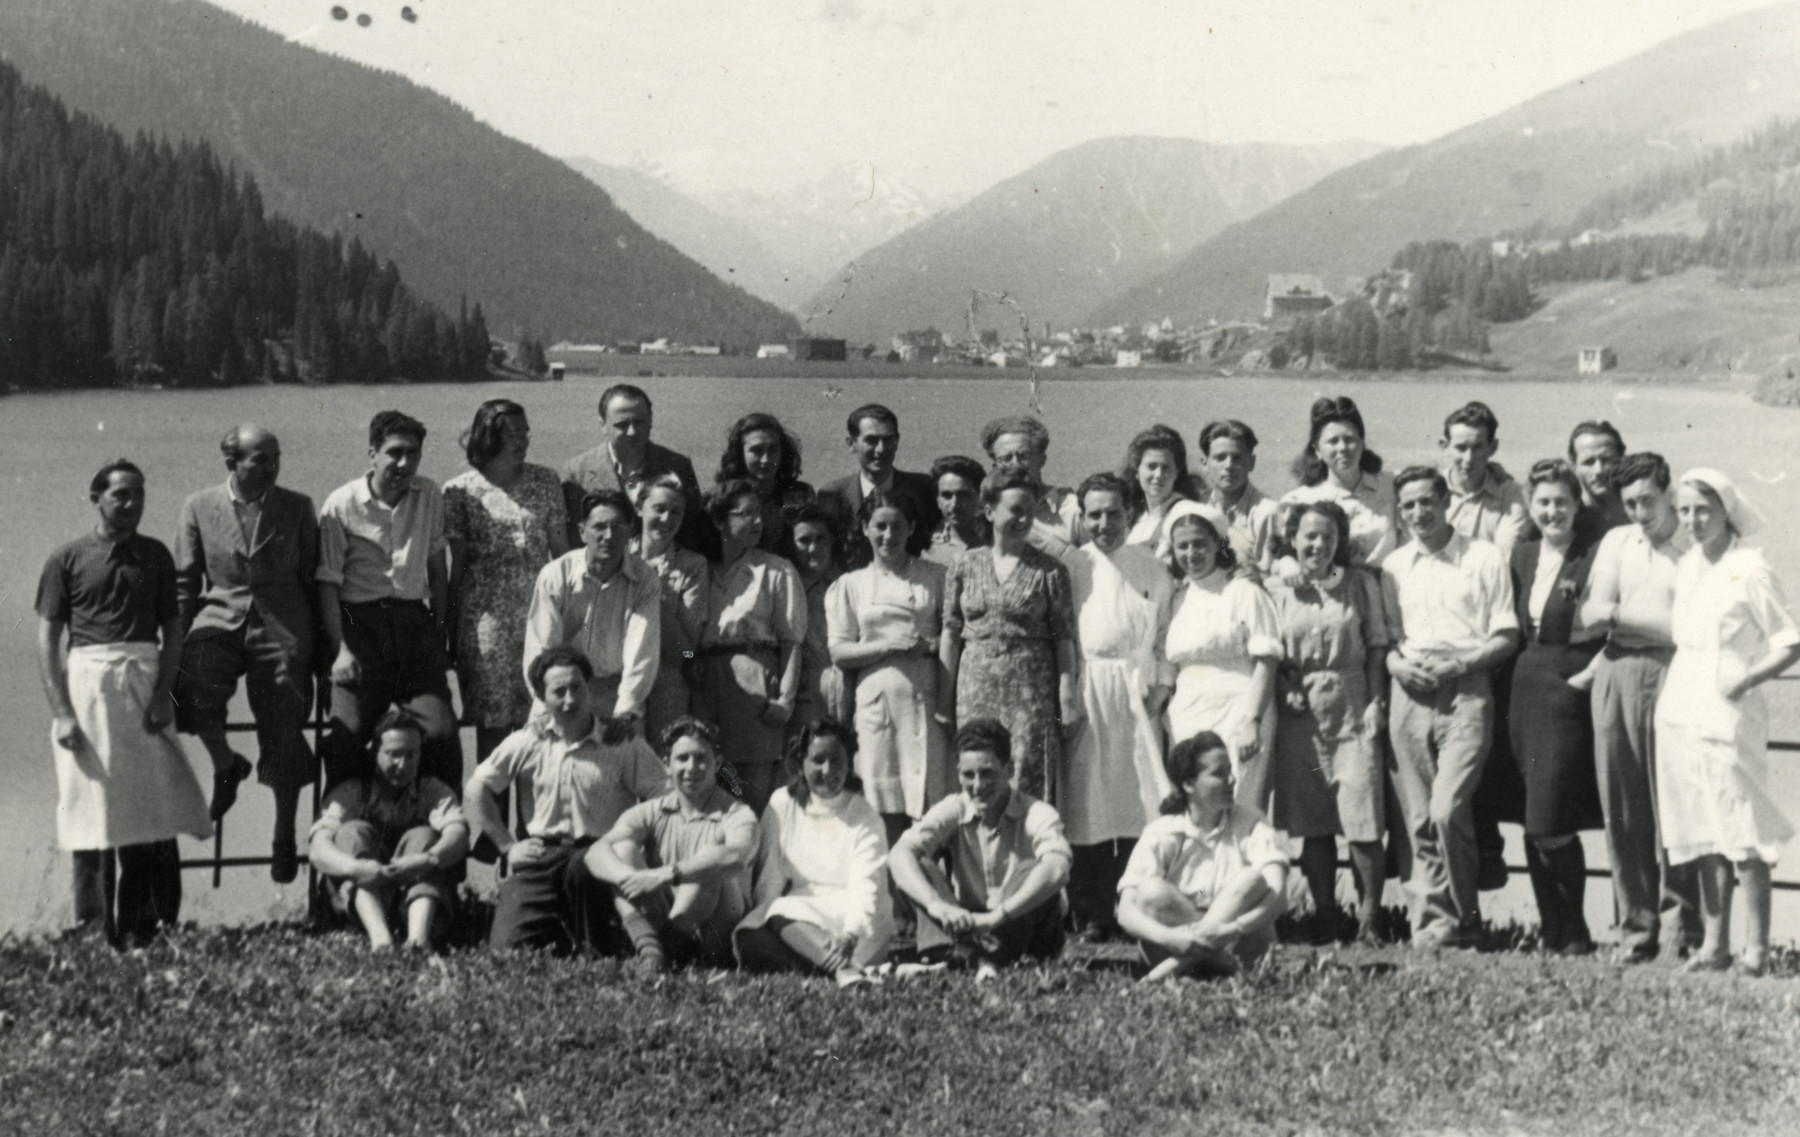 Group portrait of Jewish DPs posing next to a lake in Davos with nurses and doctors.  Yehuda Ashkenazi is pictured in the back row, sixth from the right.  Miriam Rogol is pictured in the second row, ninth from the right. Zvi Grundman is pictured in the second row, fourth from the right.